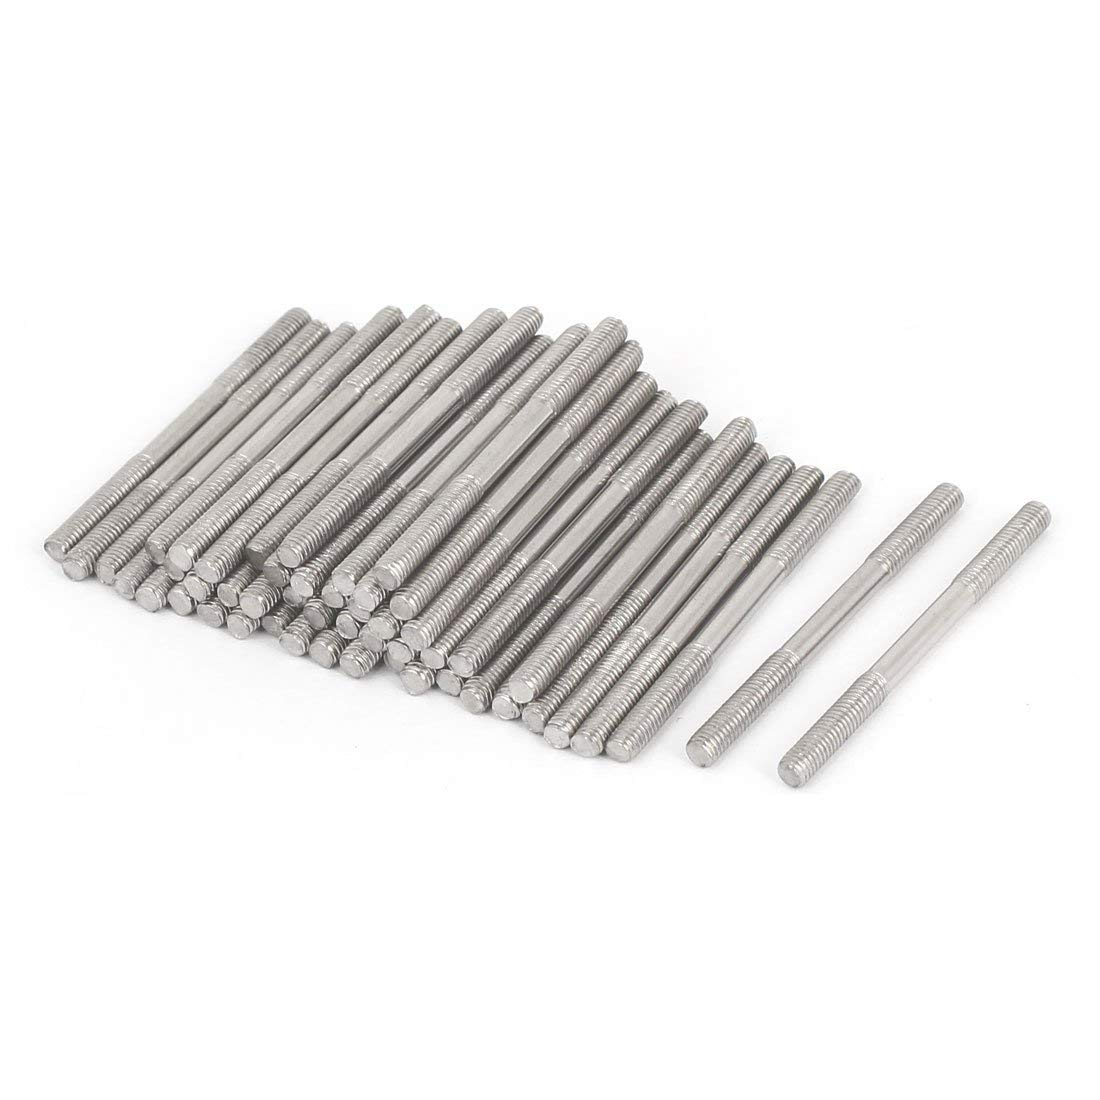 uxcell M3x40mm 304 Stainless Steel Double End Threaded Stud Screw Bolt 50pcs